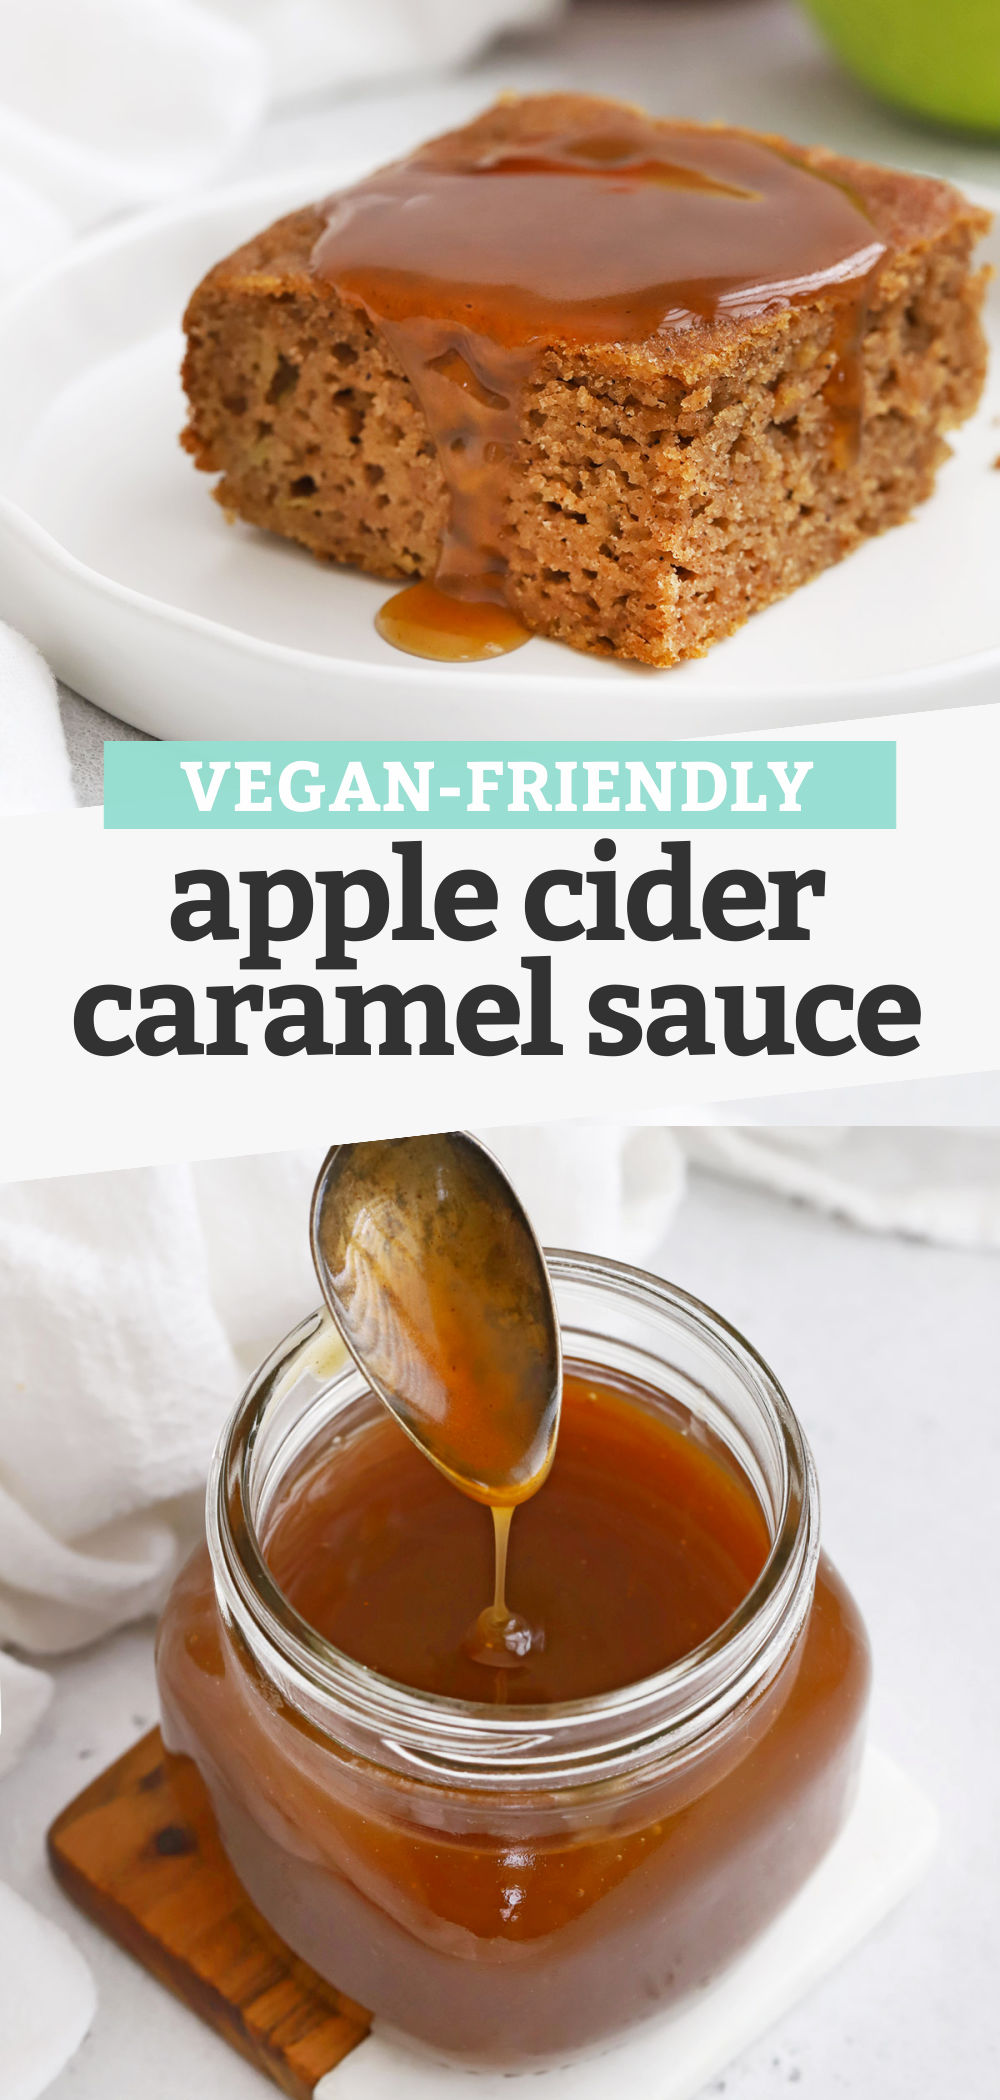 "Collage of images of apple cider caramel sauce with text overlay that reads ""Vegan-Friendly Apple Cider Caramel Sauce"""